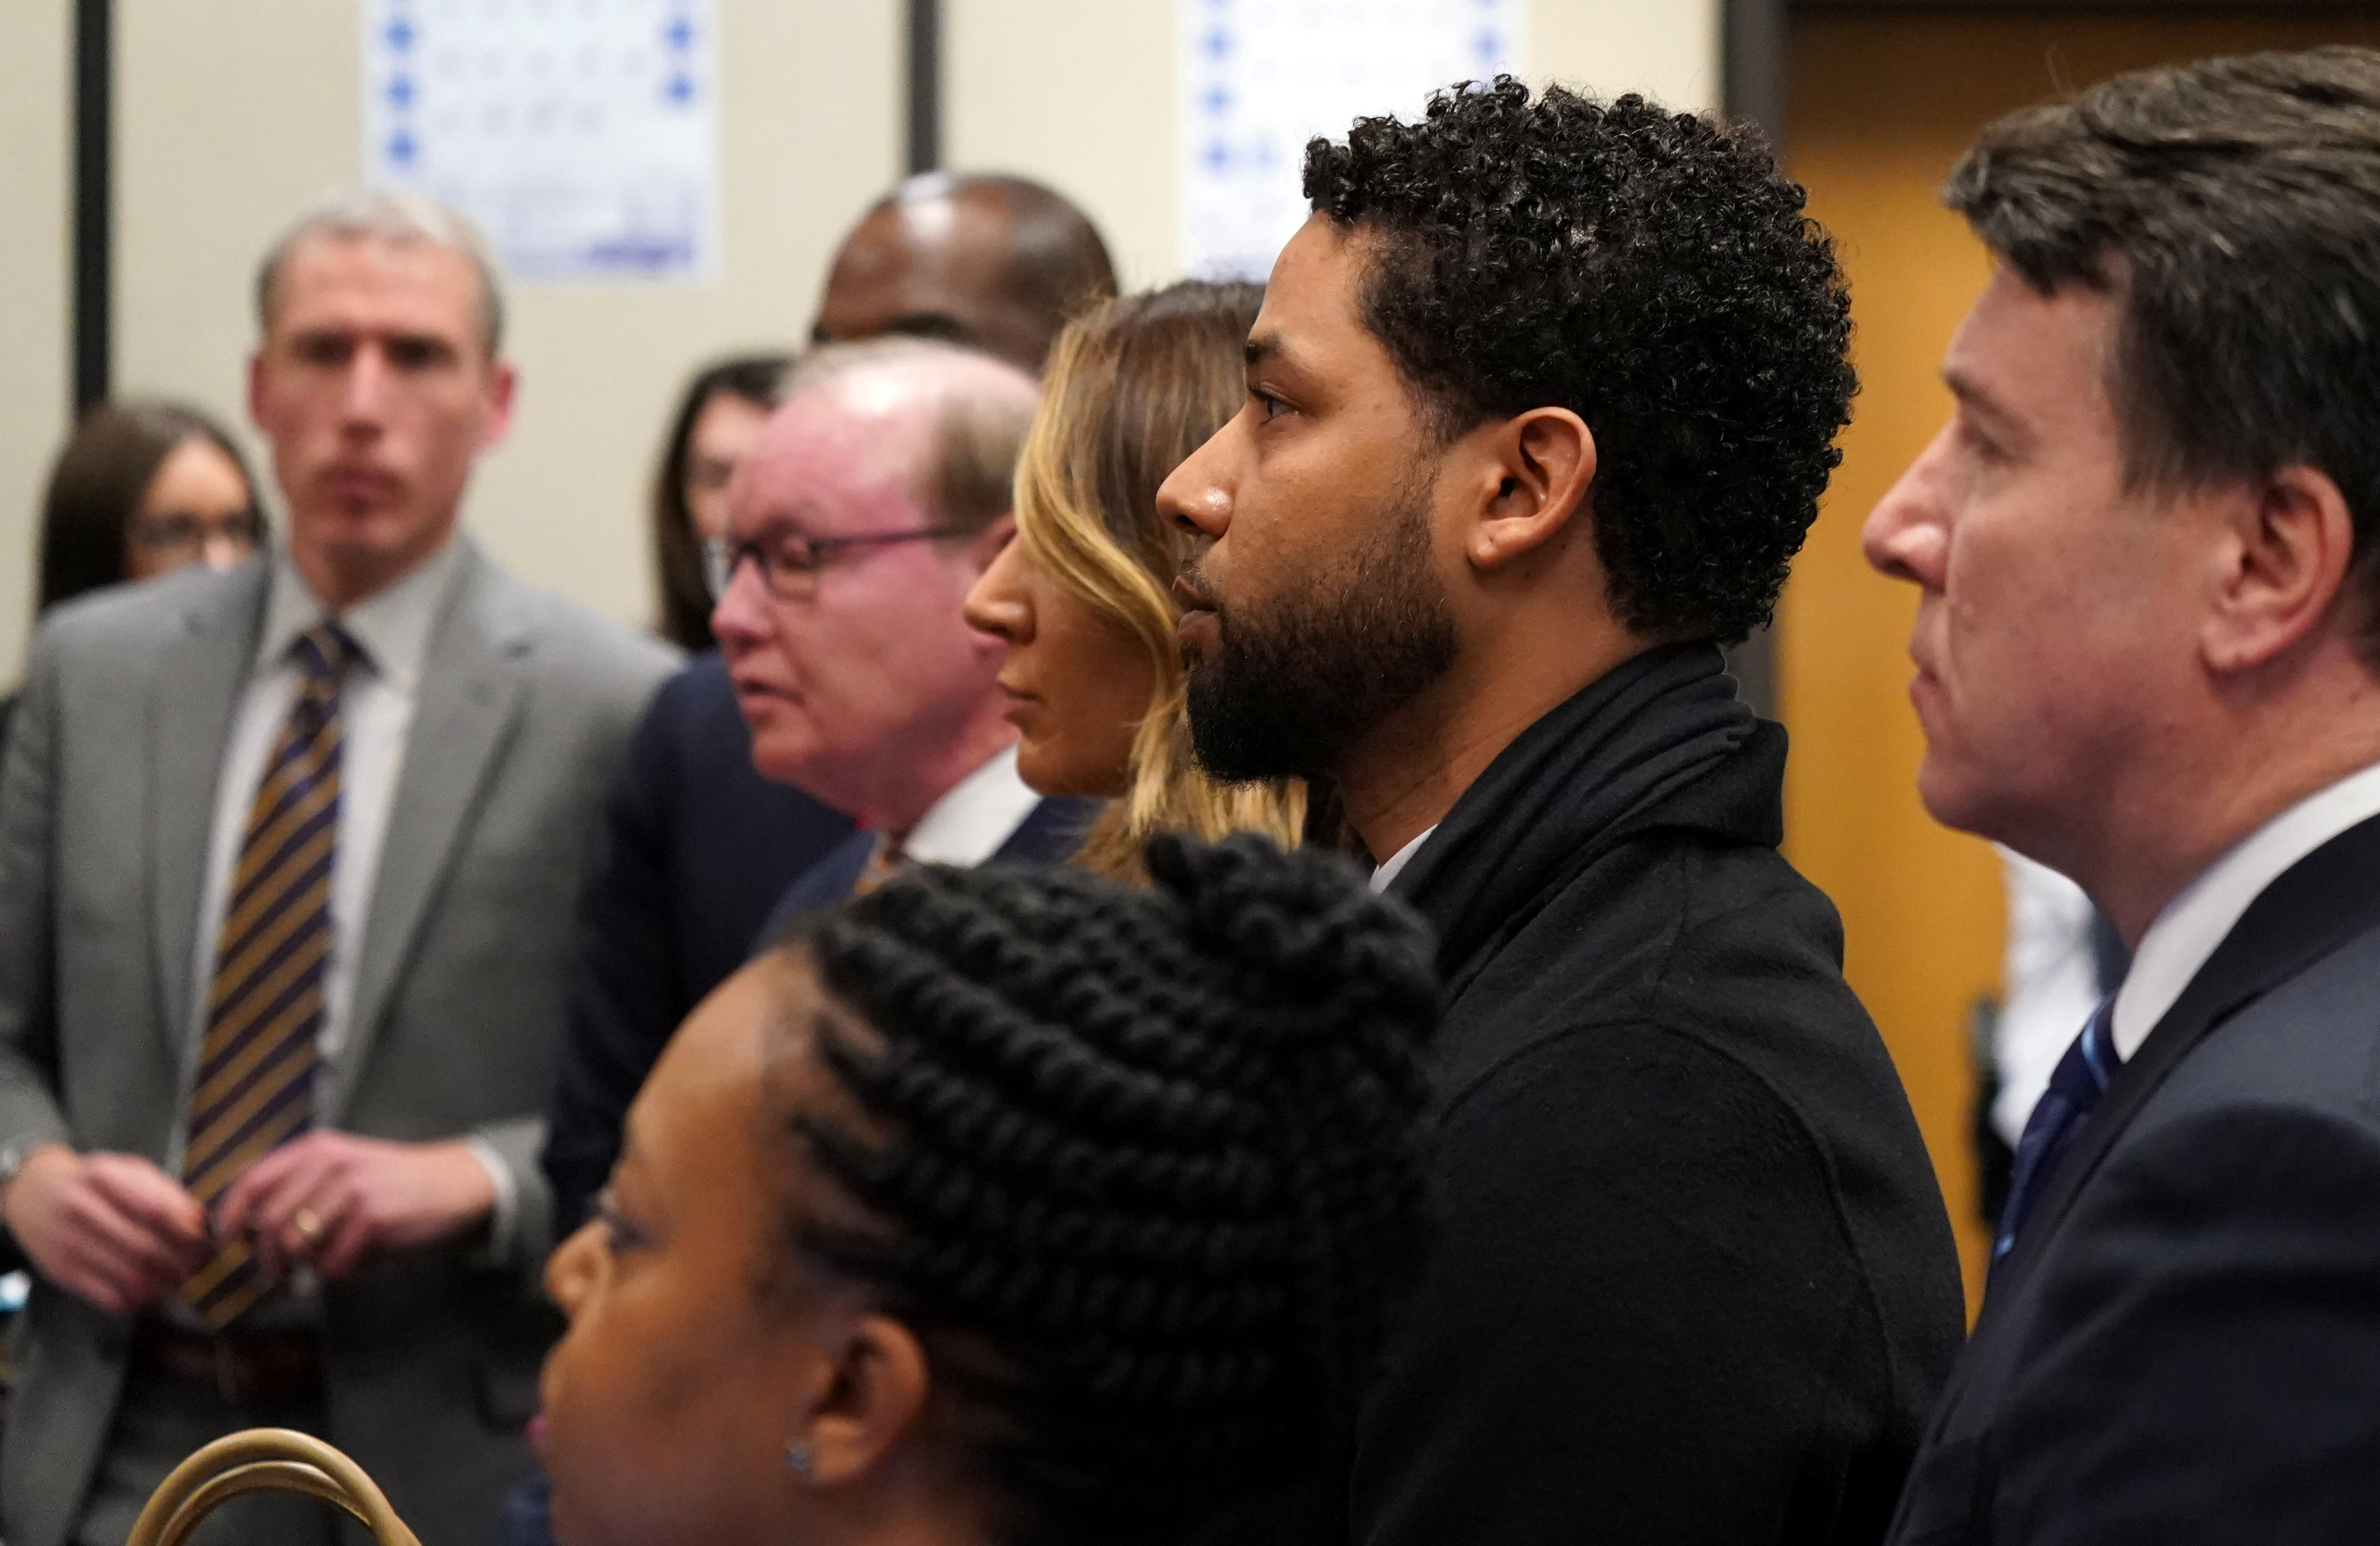 """Former """"Empire"""" actor Jussie Smollett appears in a courtroom at the Leighton Criminal Court Building for his arraignment, in Chicago, Illinois, U.S., Feb. 24, 2020. Brian Cassella/Pool via REUTERS"""